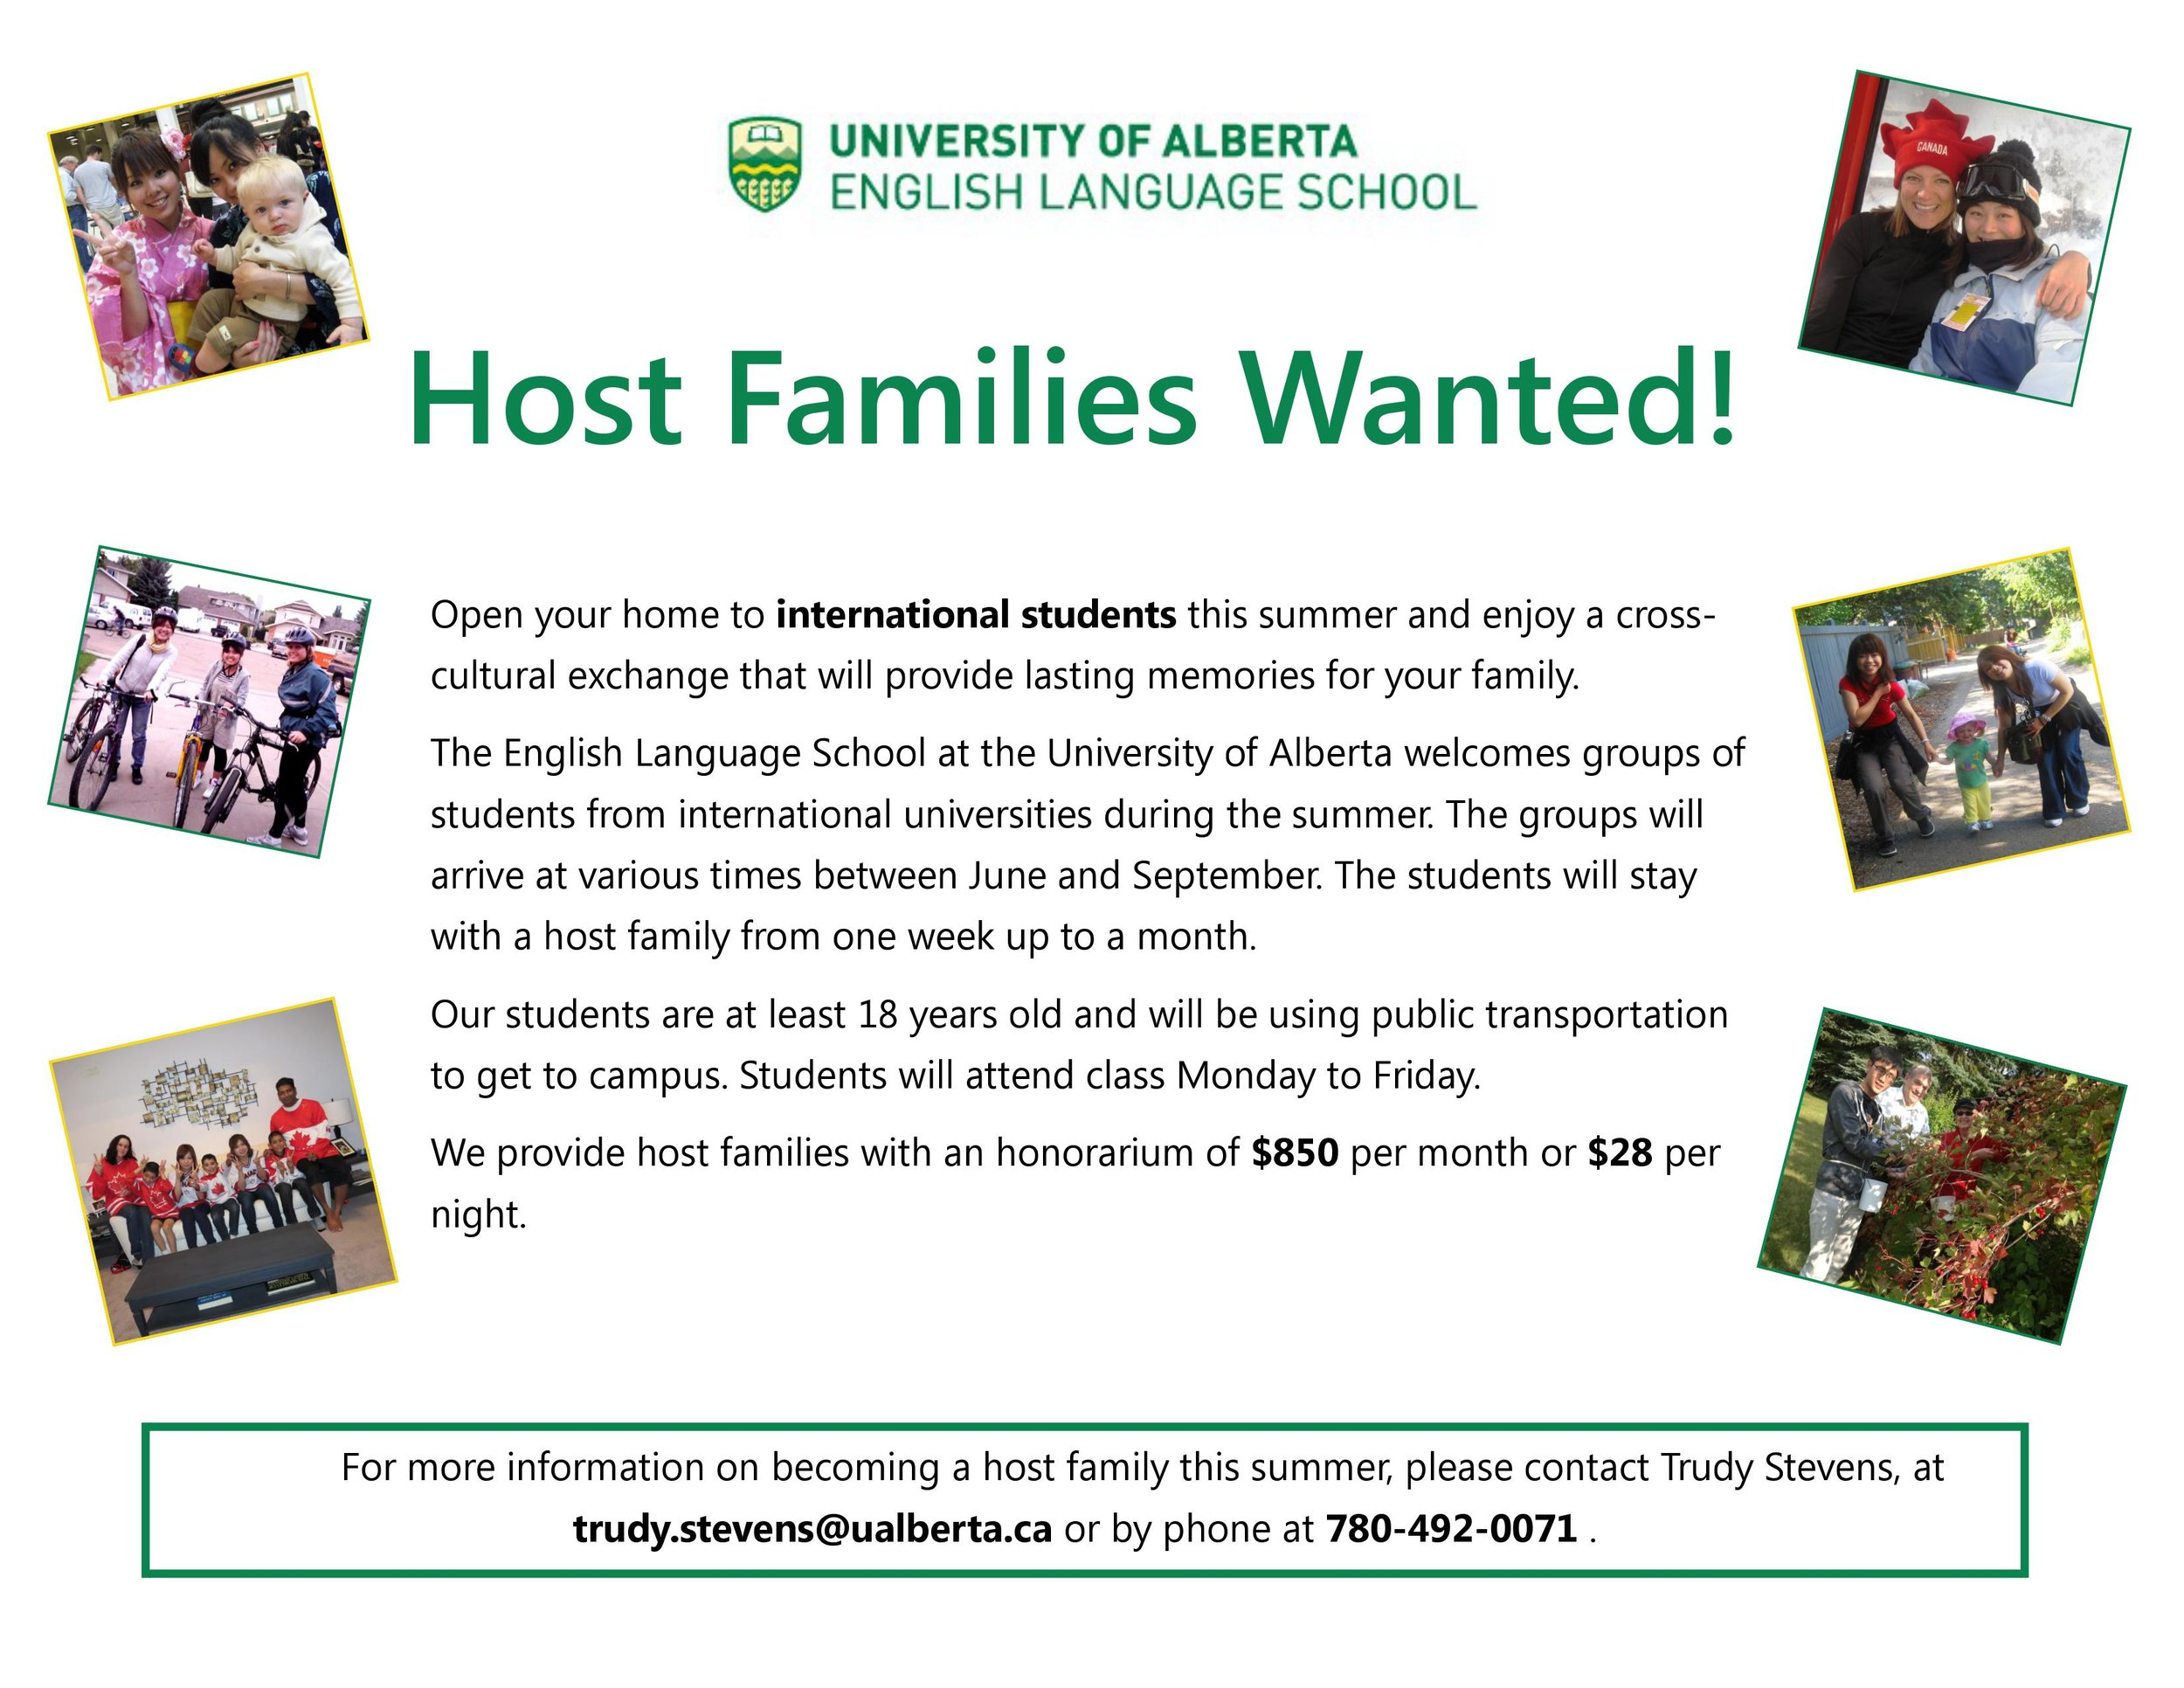 Host Families Wanted 2019.jpg